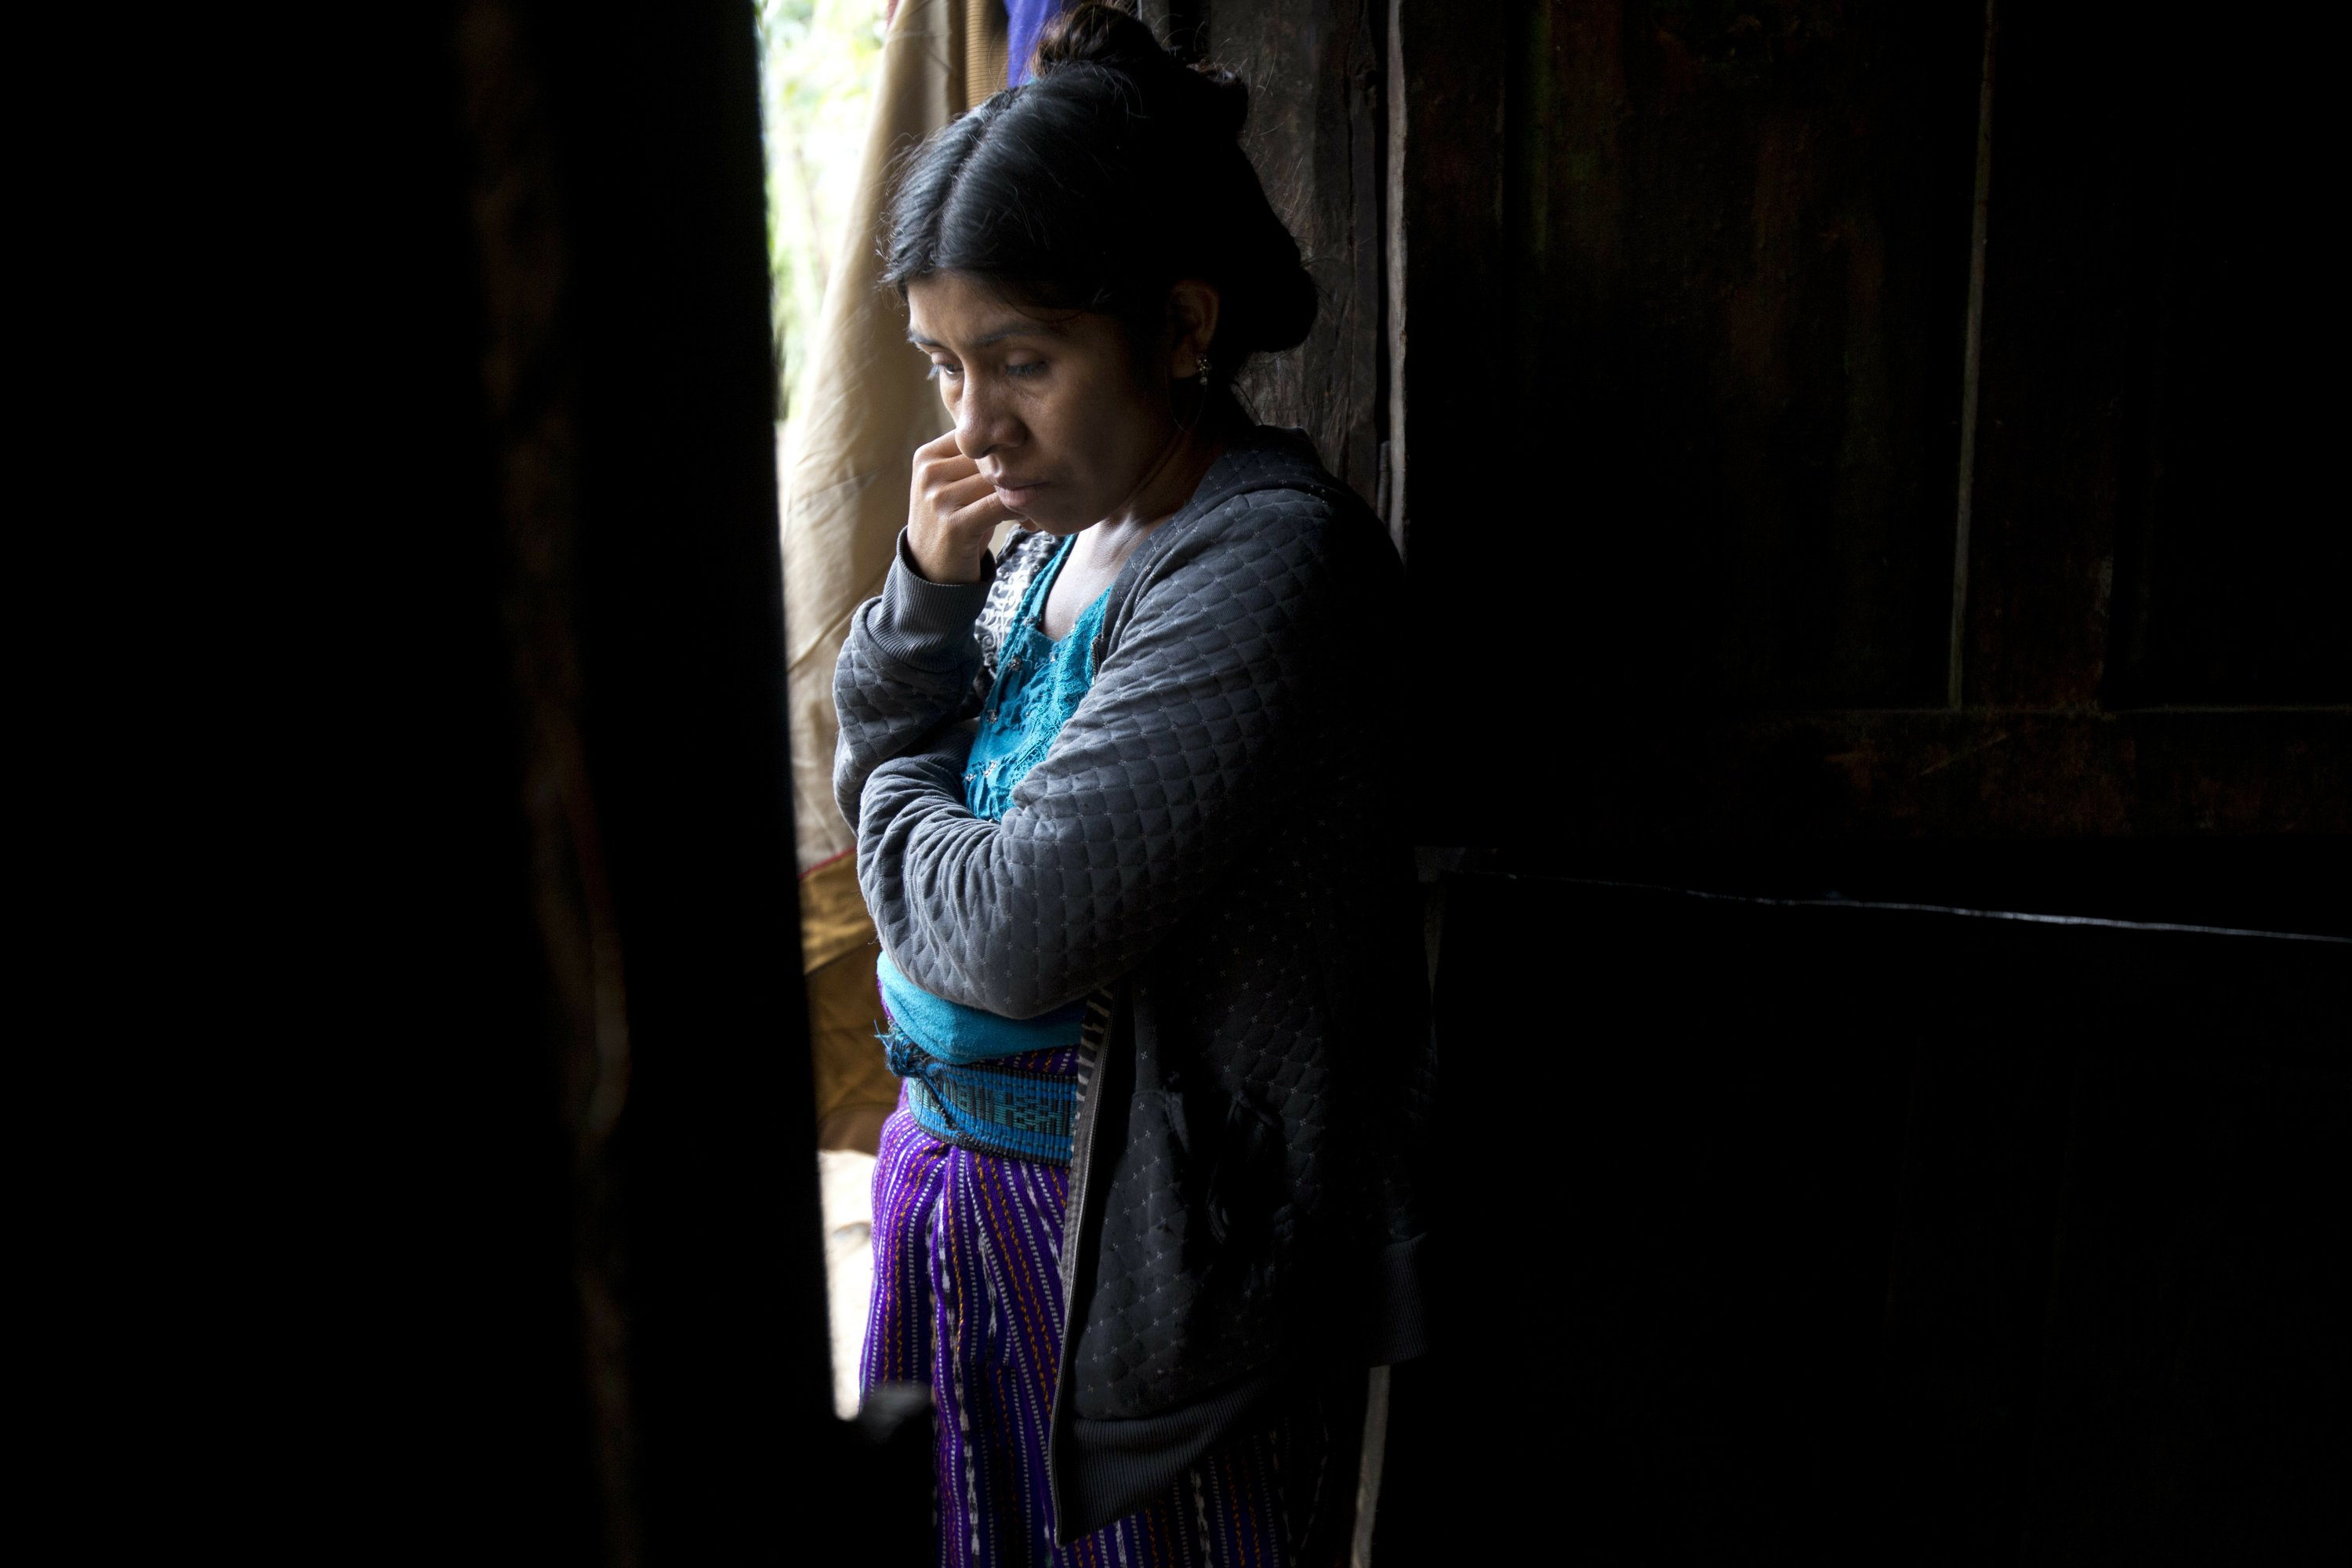 Trump puts blame for child deaths at border on Democrats